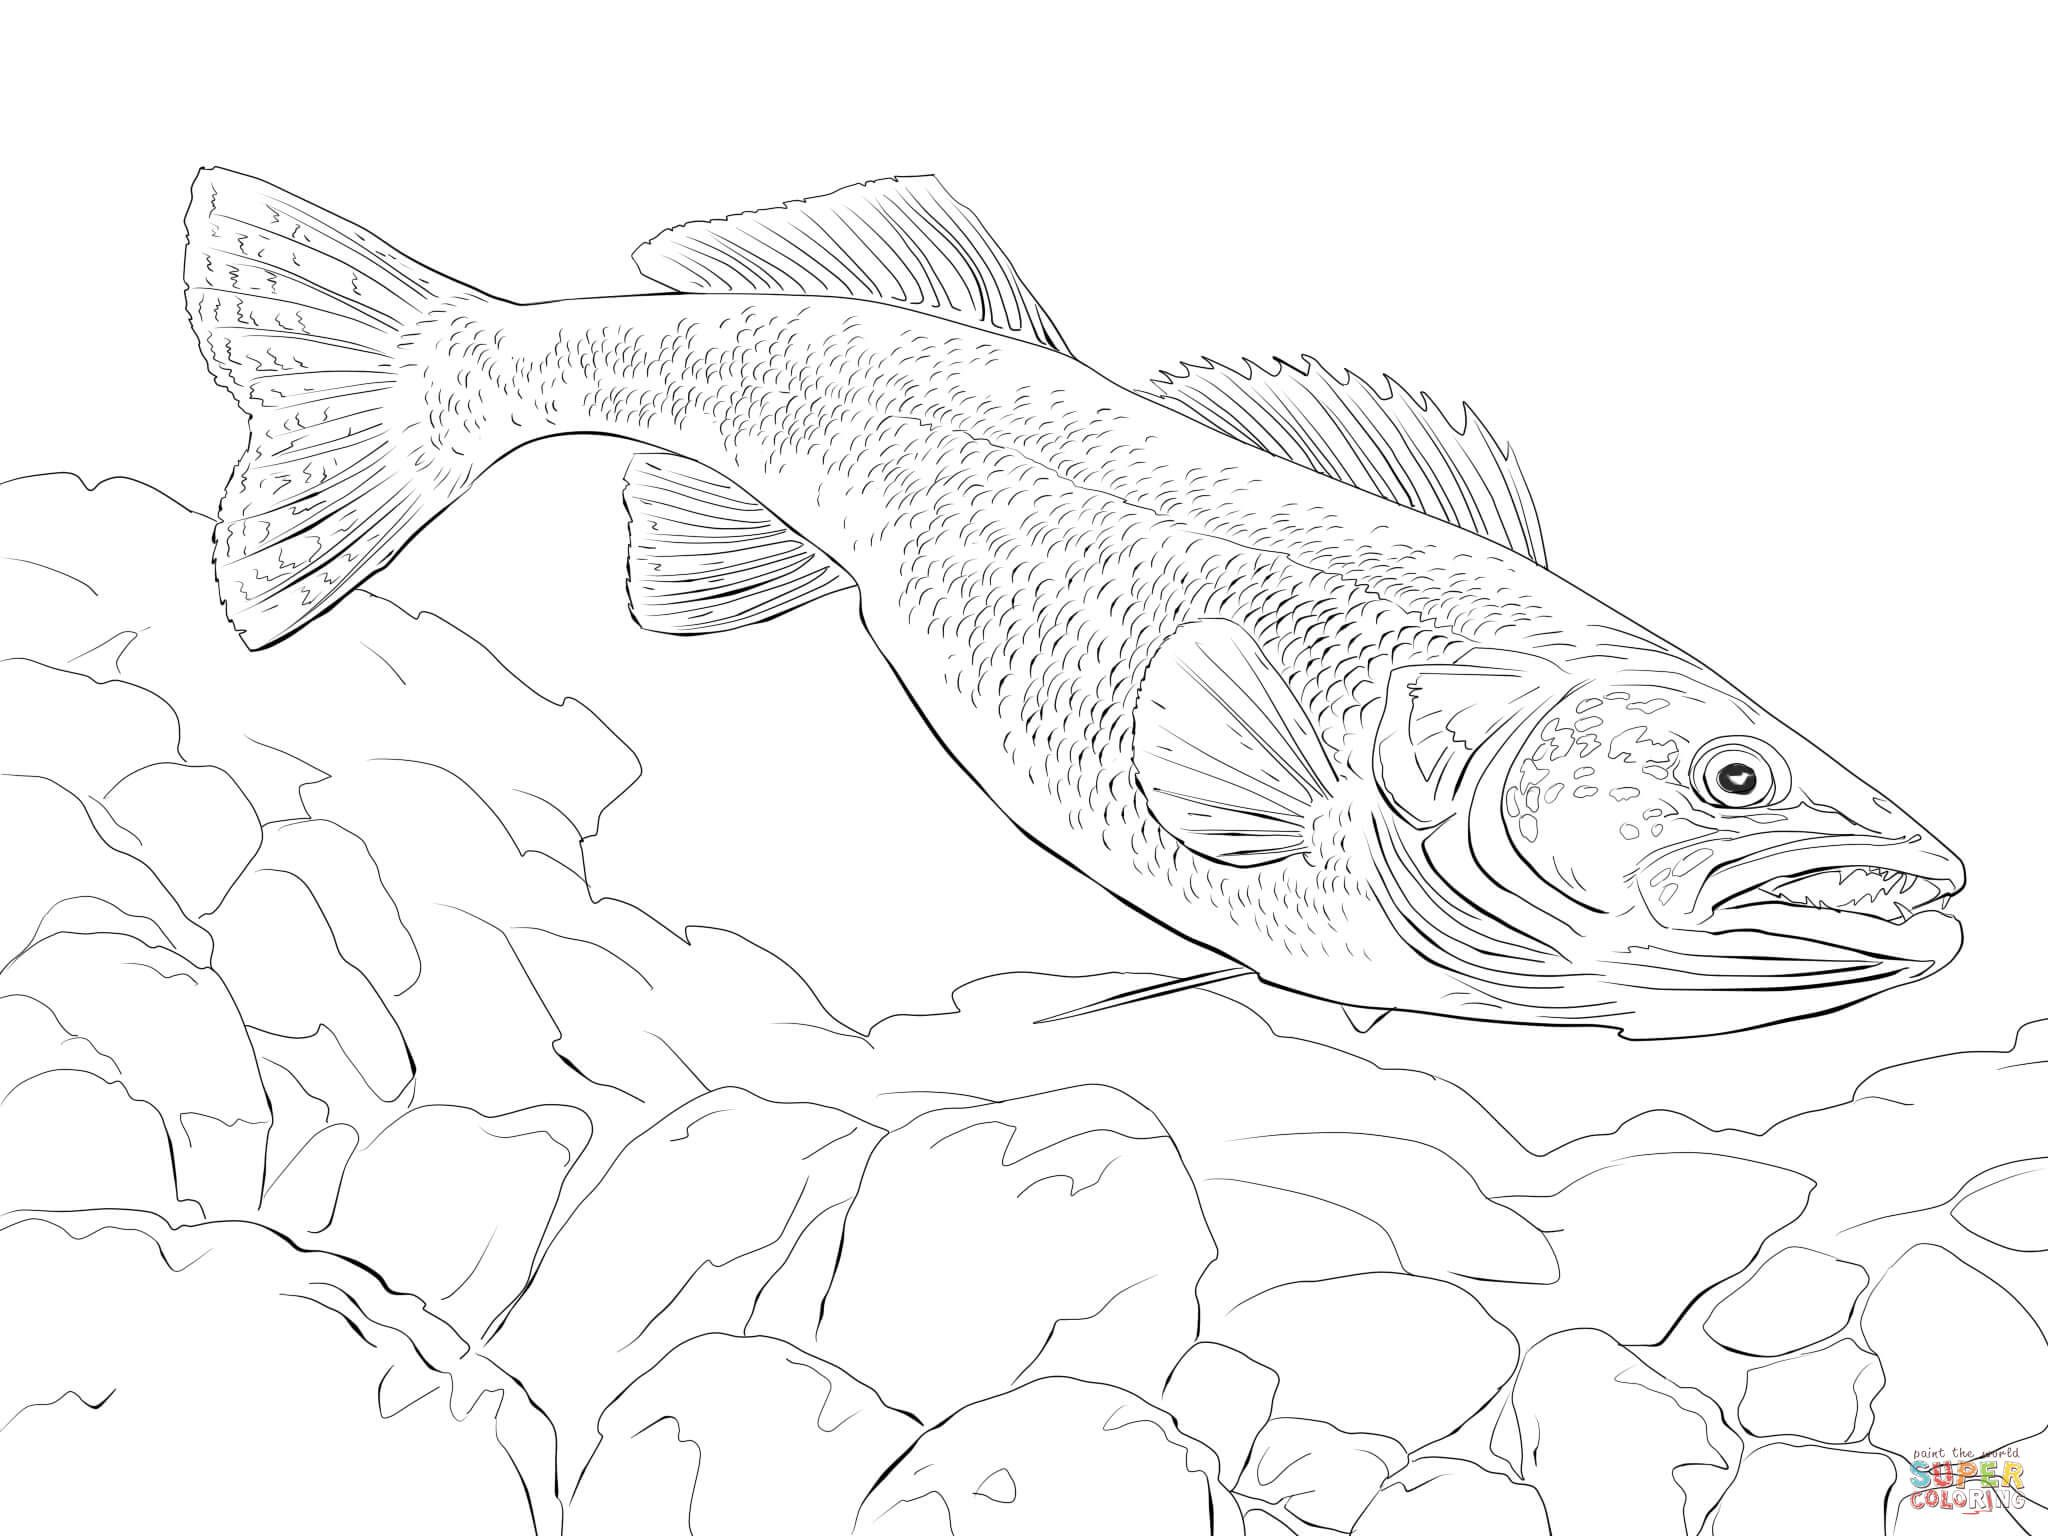 Walleye Fish Coloring Page | Jax | Pinterest | Walleye fishing and ...